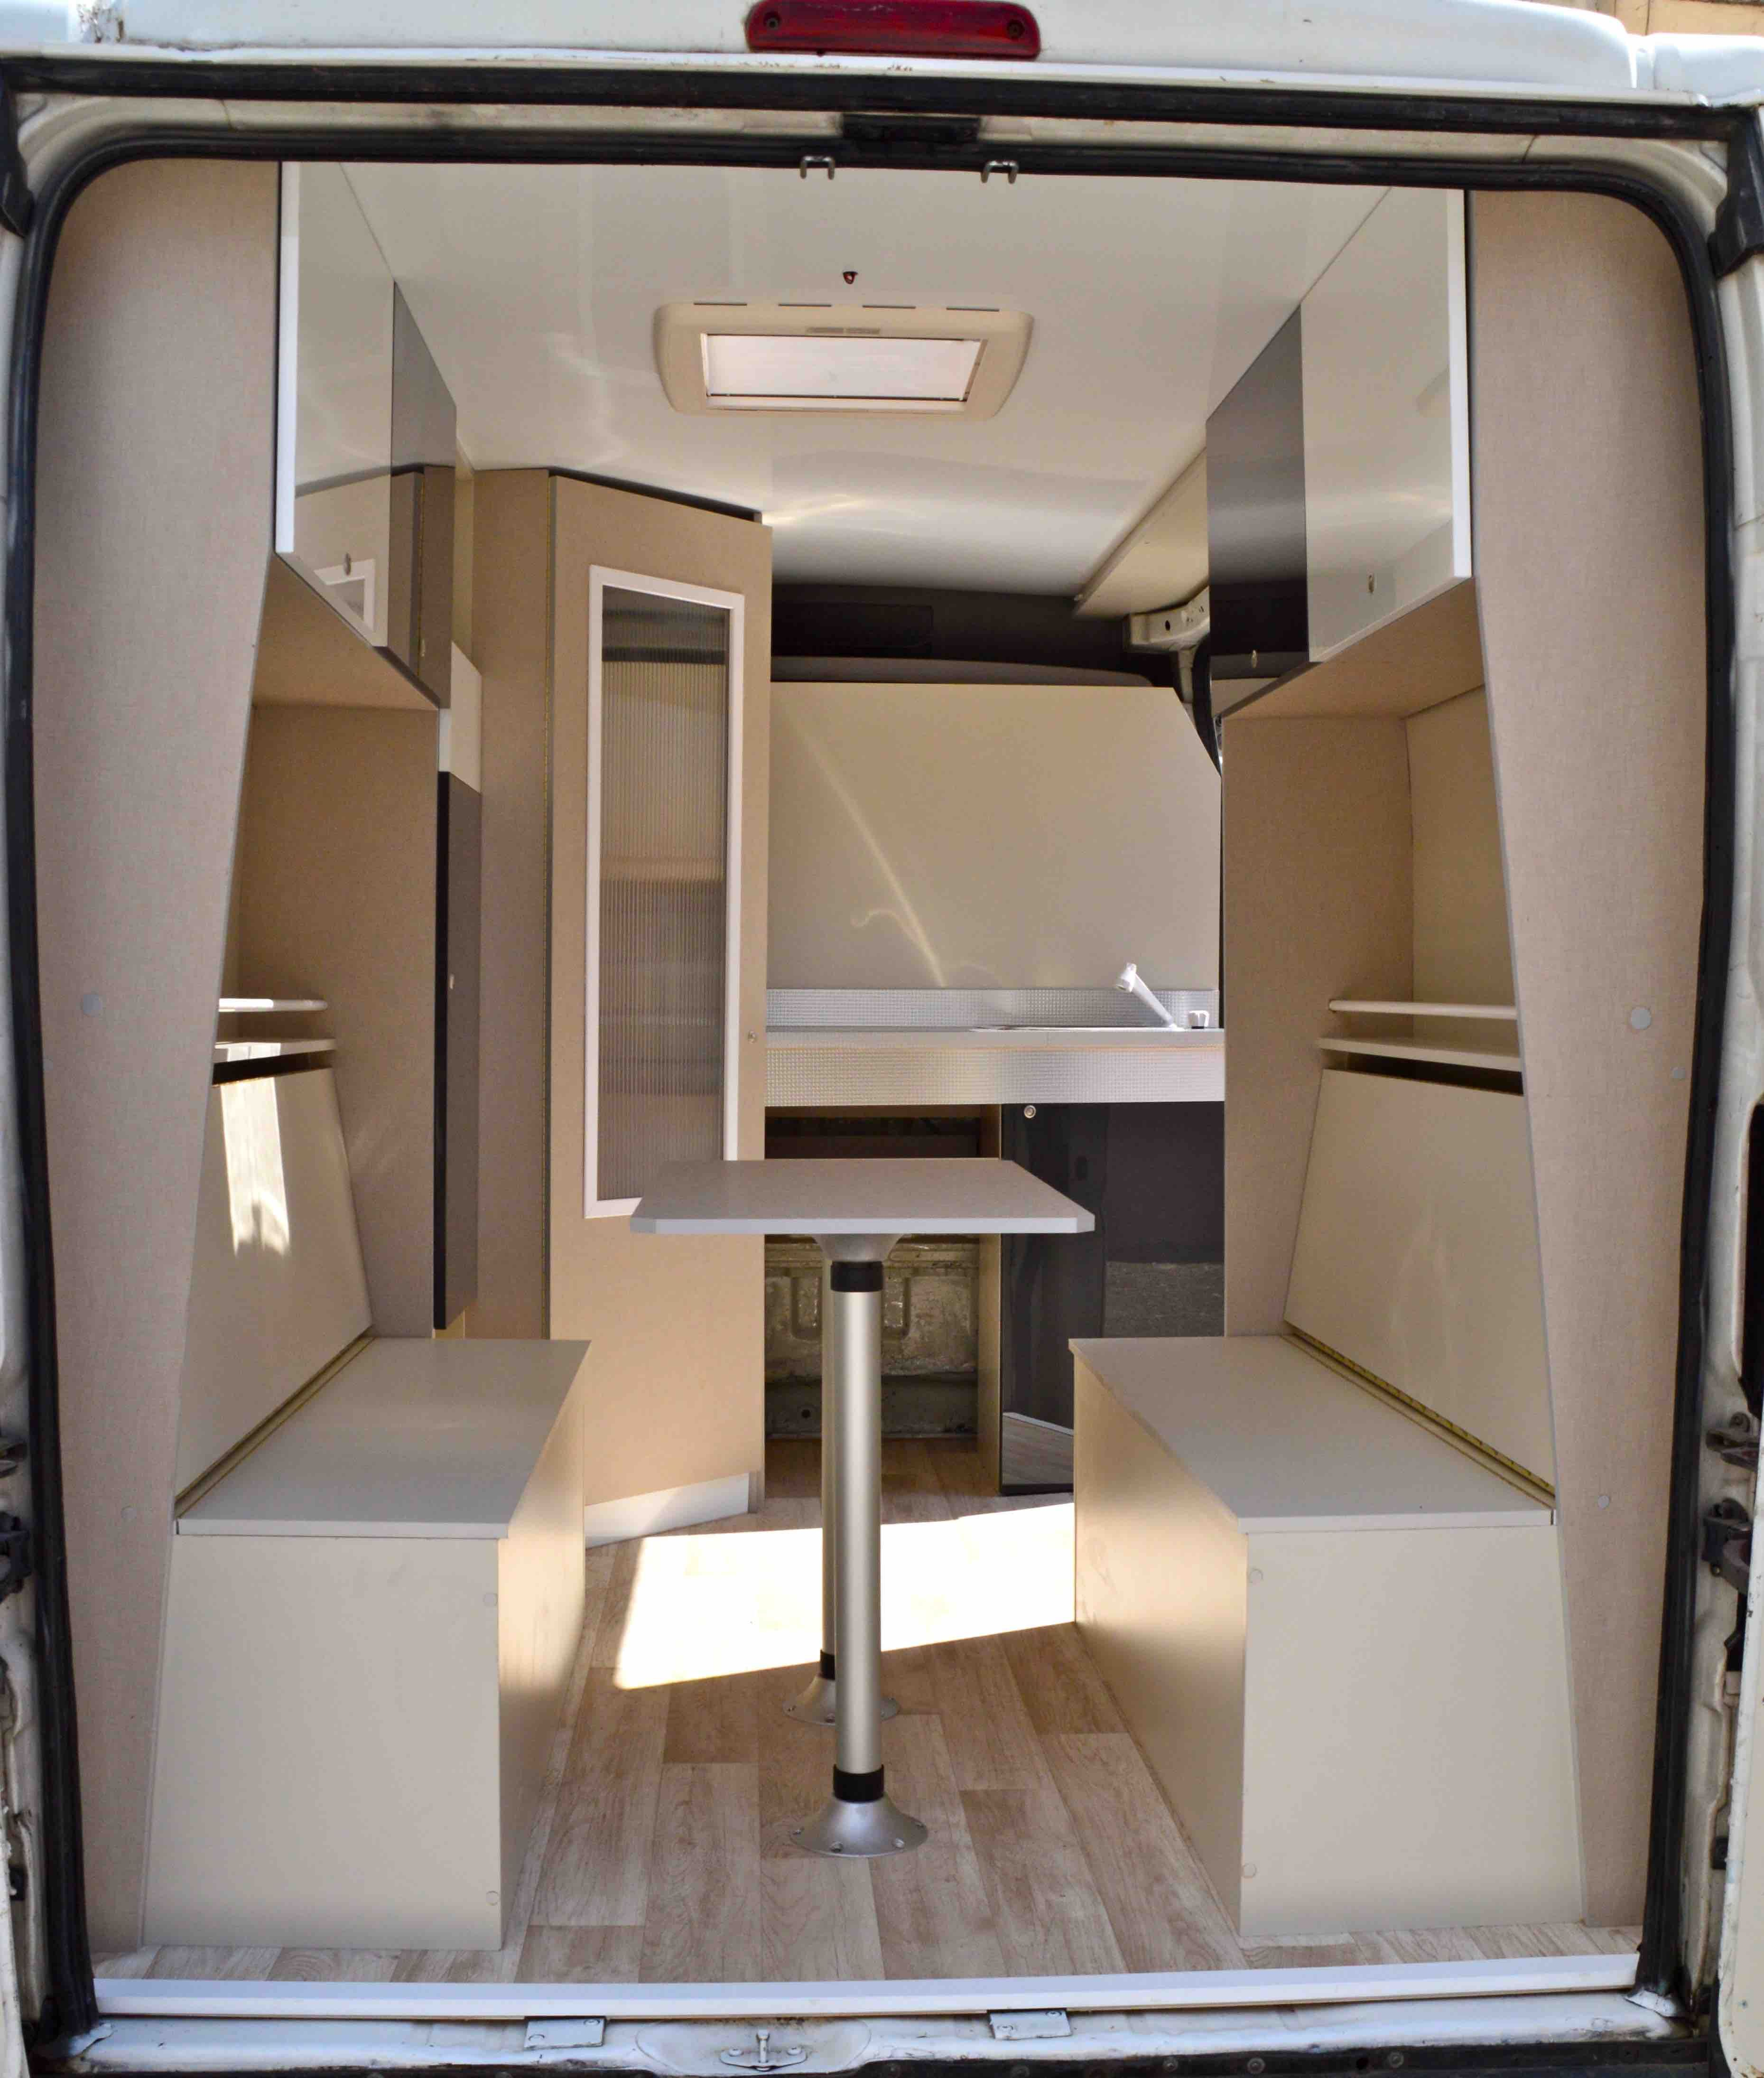 citro n jumper equipada furgonetas preparadas y equipadas vacaciones camper camper pinterest. Black Bedroom Furniture Sets. Home Design Ideas